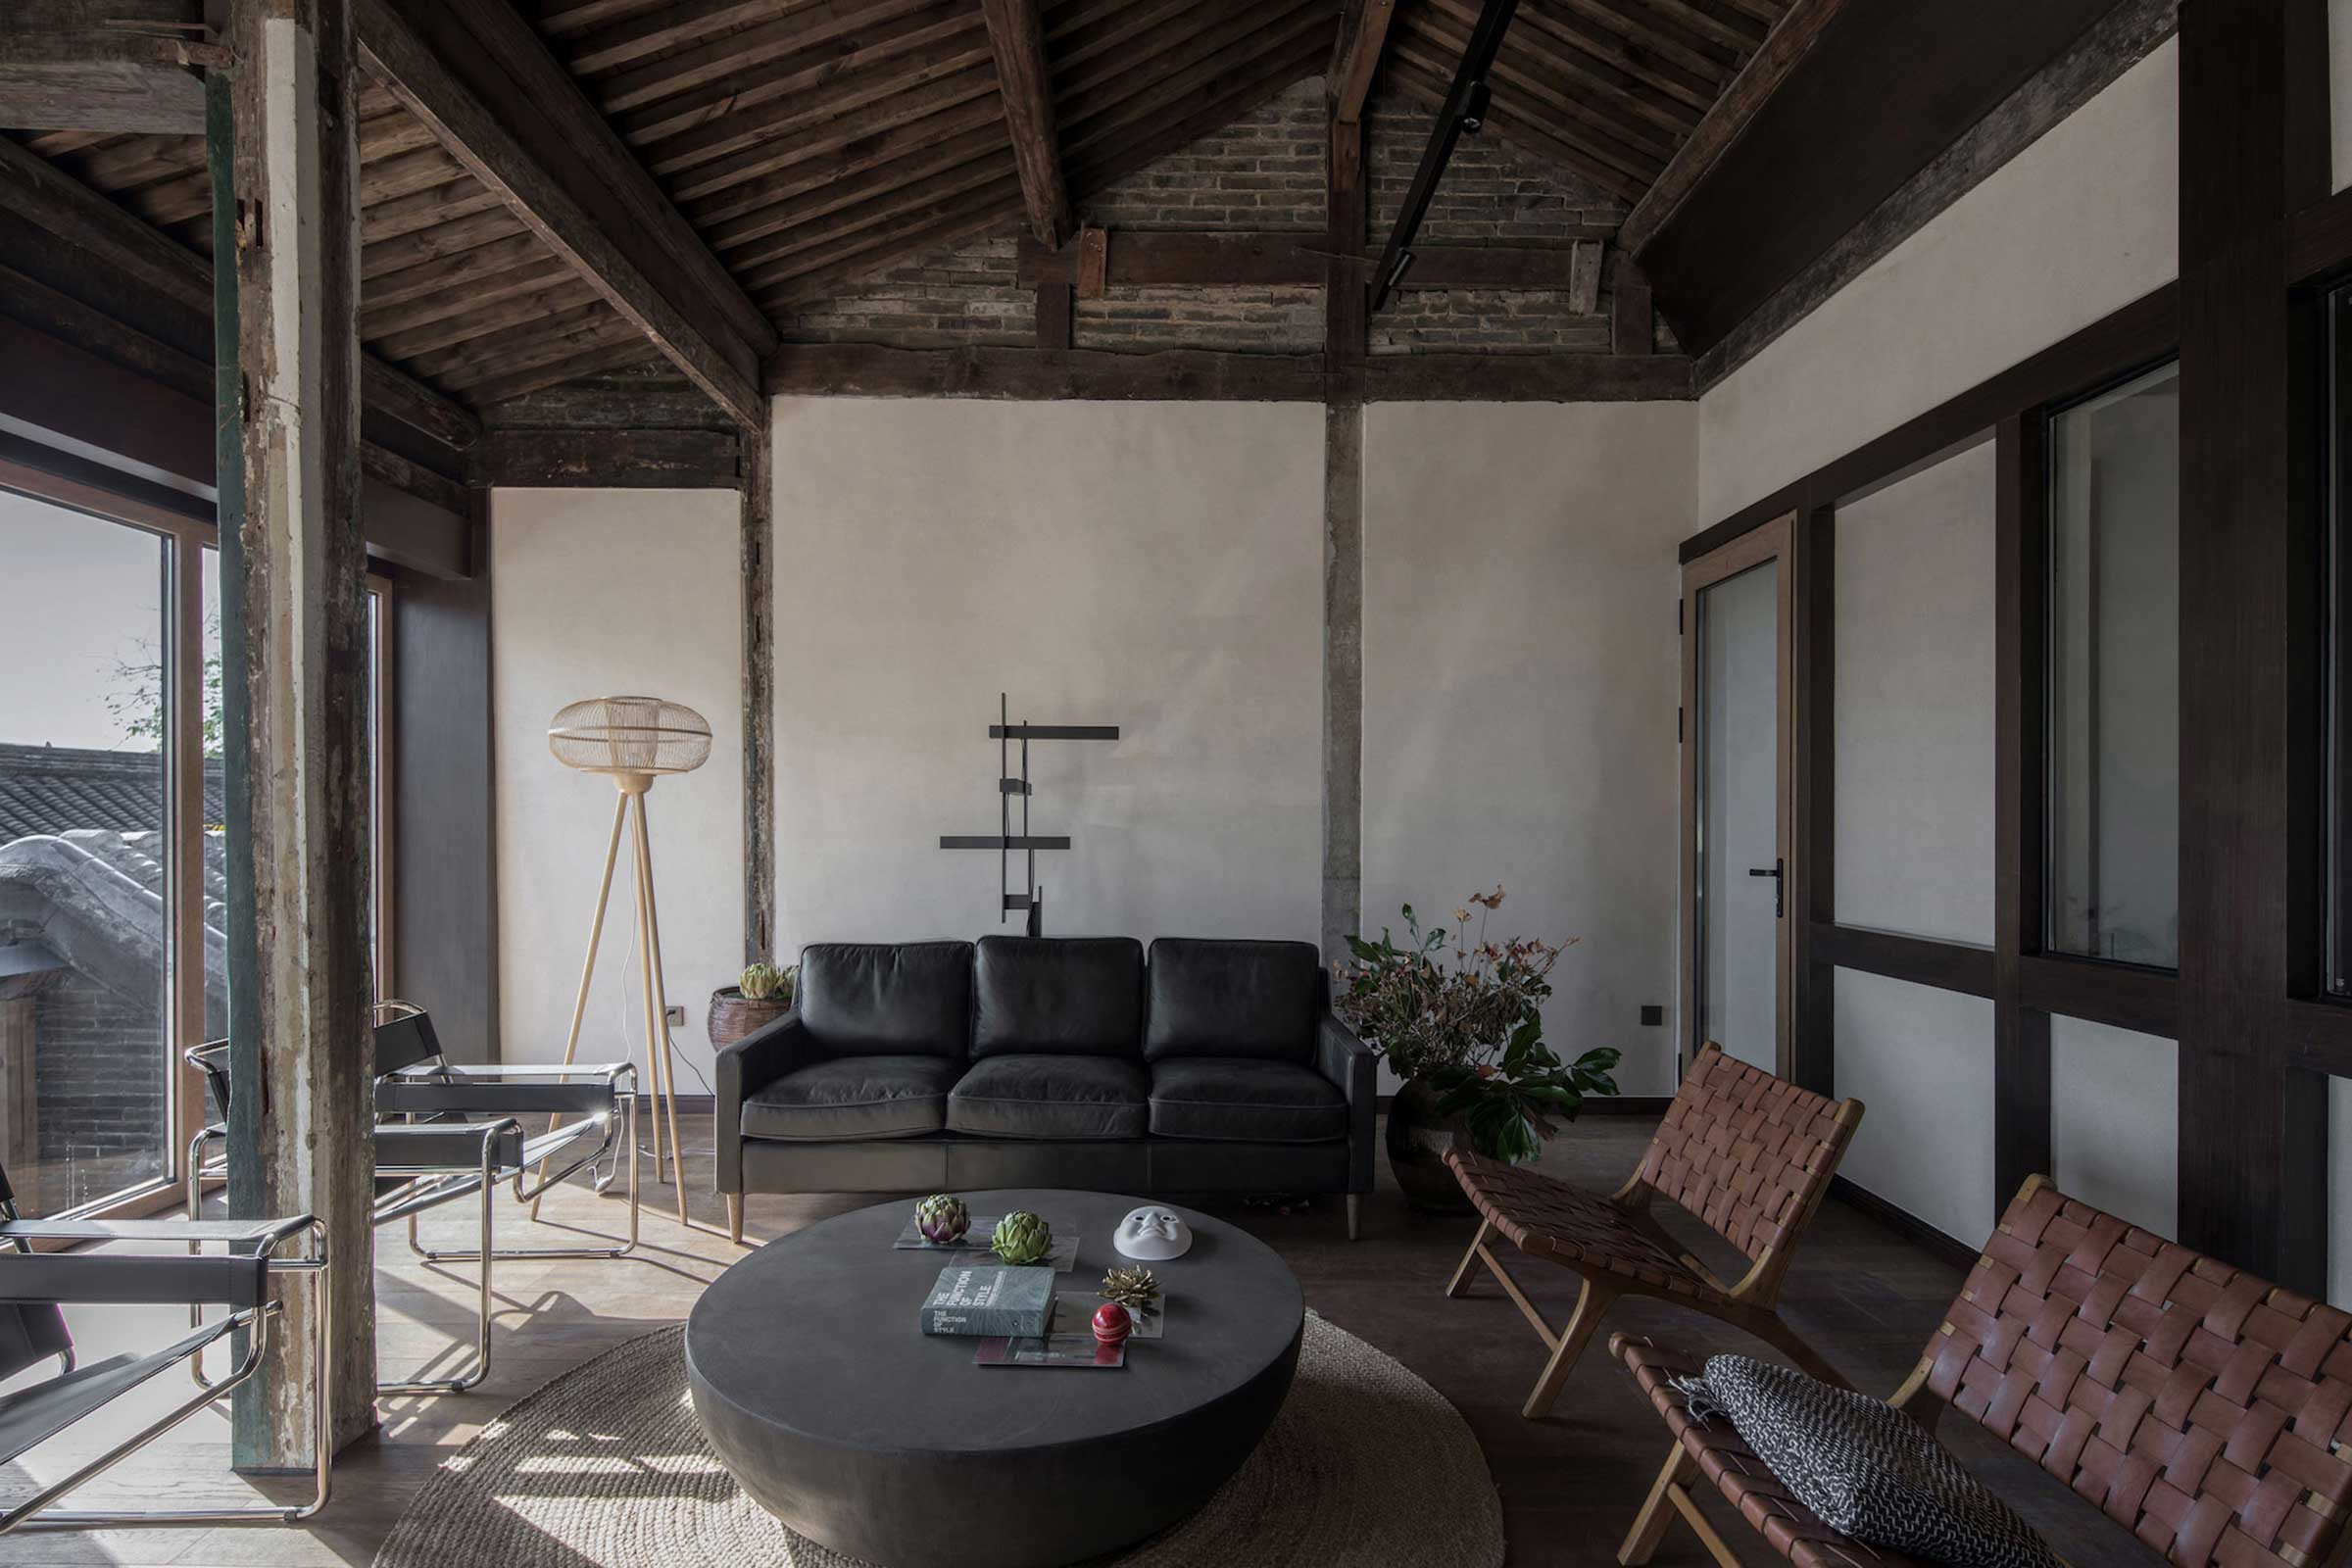 quad-house-ARCHISTRY-nolan-chao-28-private-room-on-second-floor.jpg